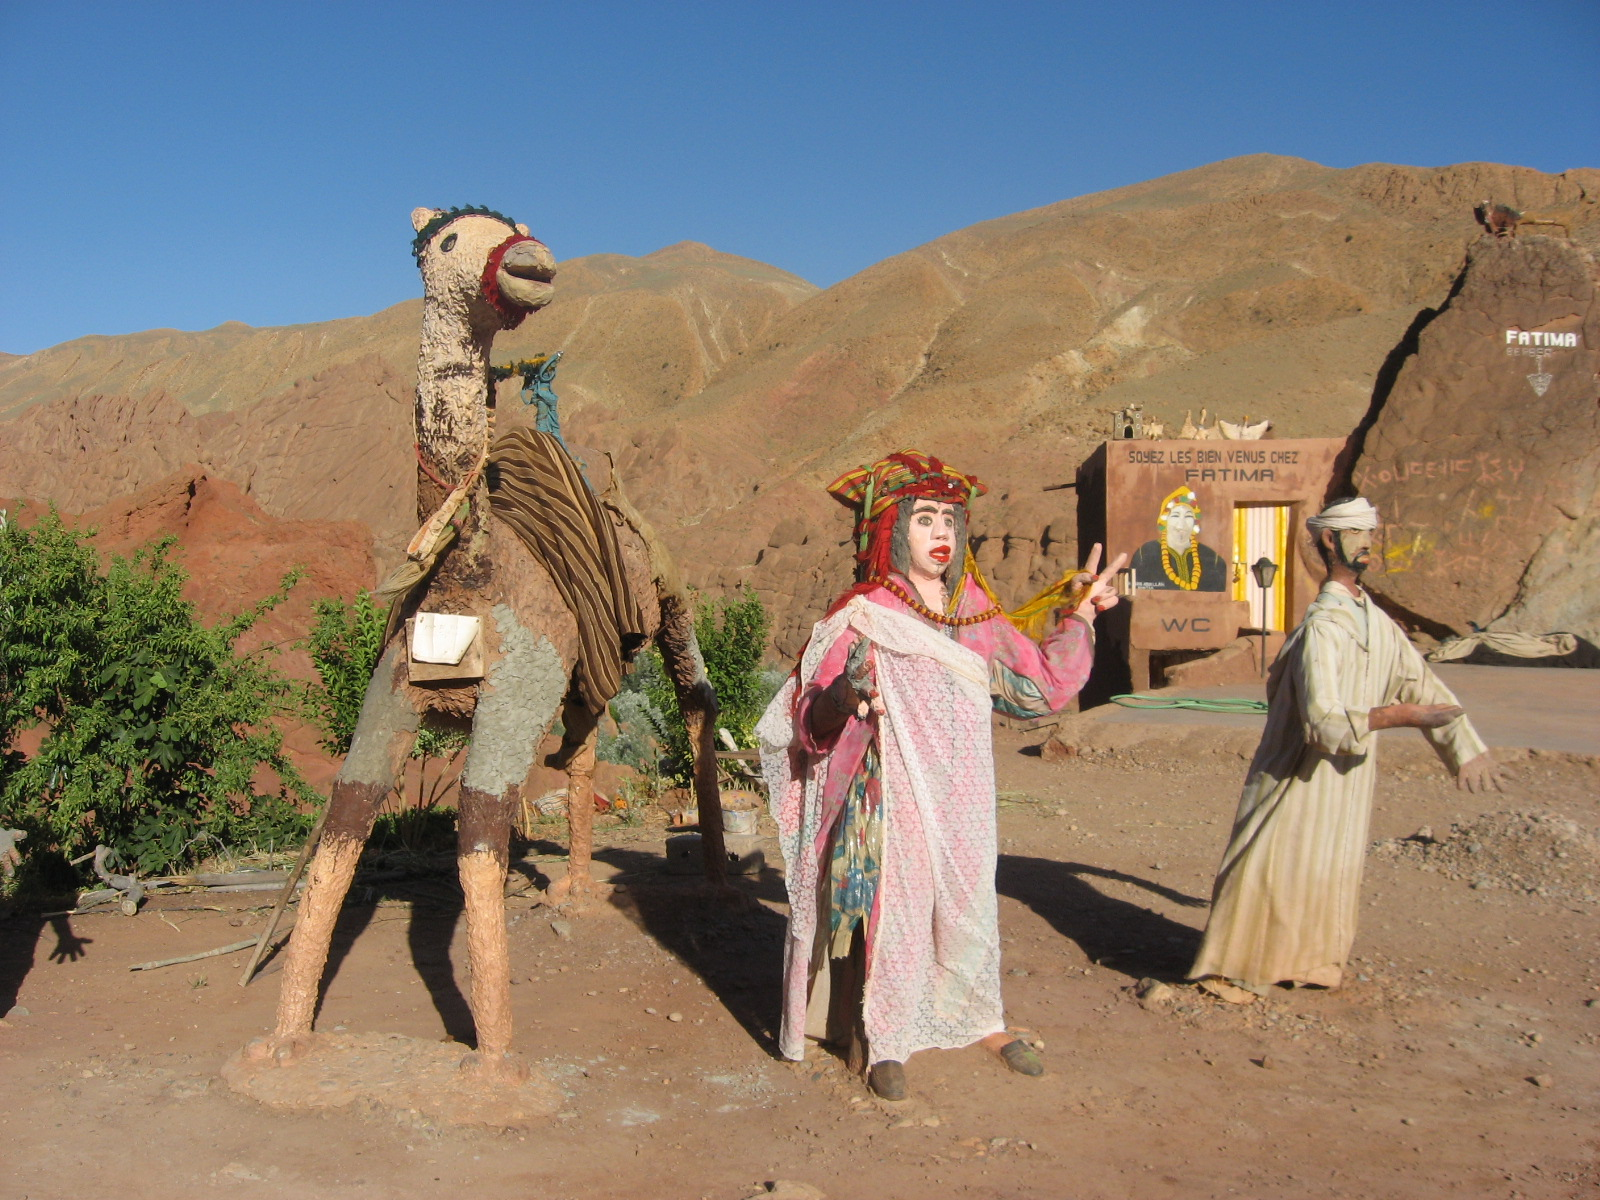 Atlas Statues For Sale Weird And Wonderful Things Morocco Girl Unmapped